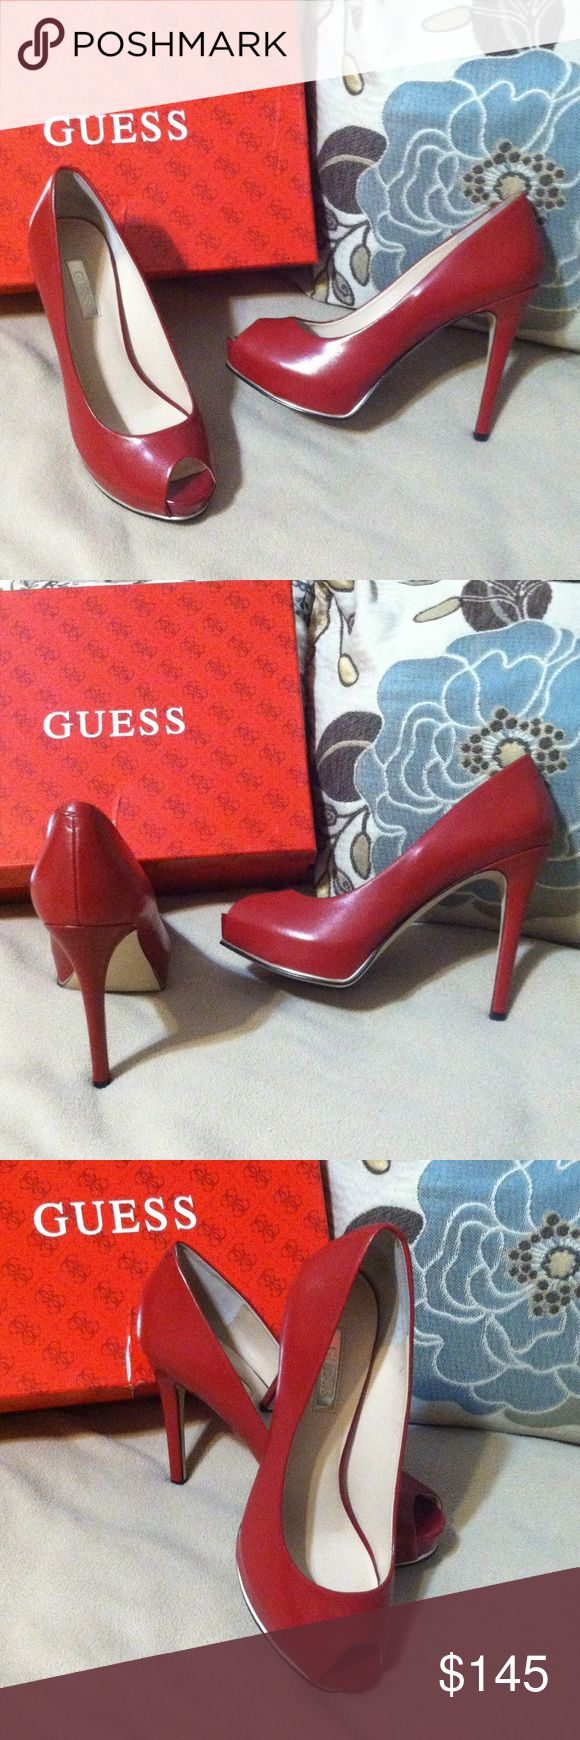 Guess Wine Red Matte Leather PeepToe PlatformPumps Guess Wine Red Matte Leather Peep-toe Platform Pumps. Guess Shoes